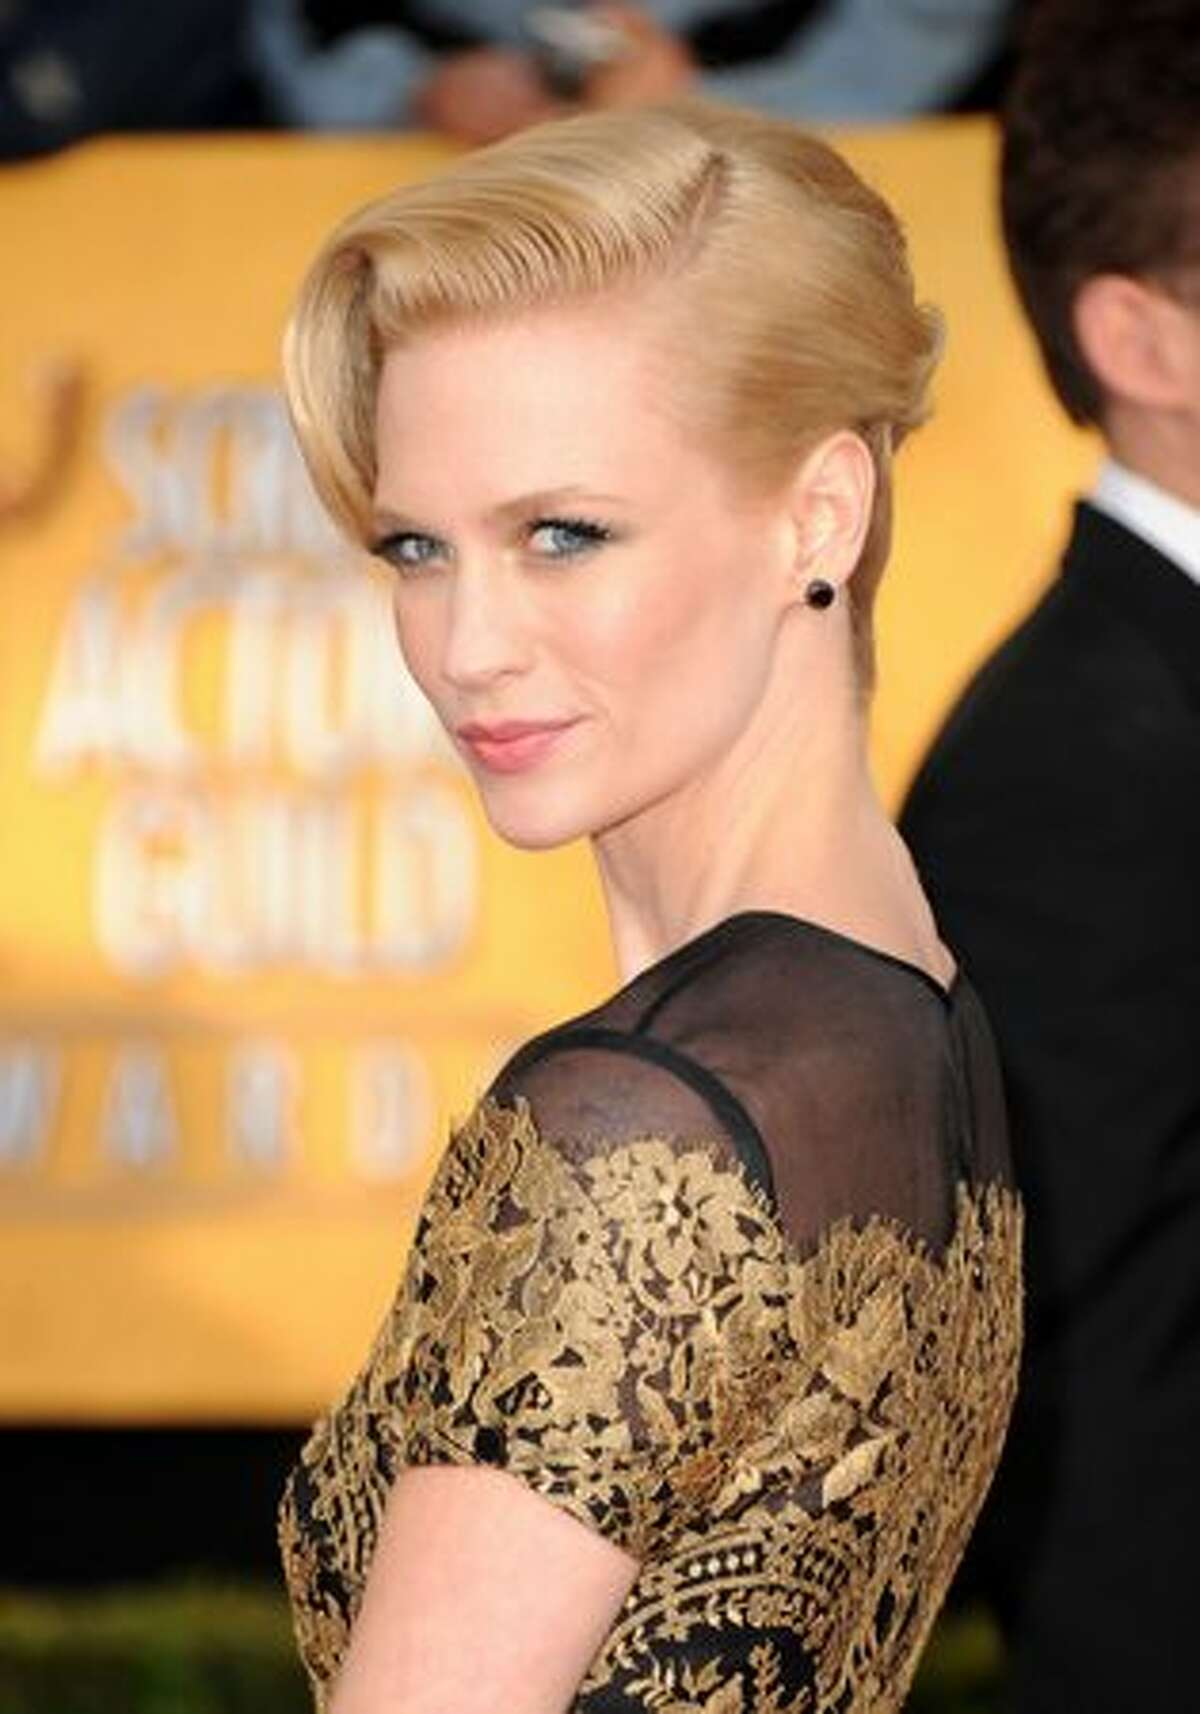 Actress January Jones arrives at the 17th annual Screen Actors Guild Awards held at The Shrine Auditorium in Los Angeles on Sunday, Jan. 30, 2011.